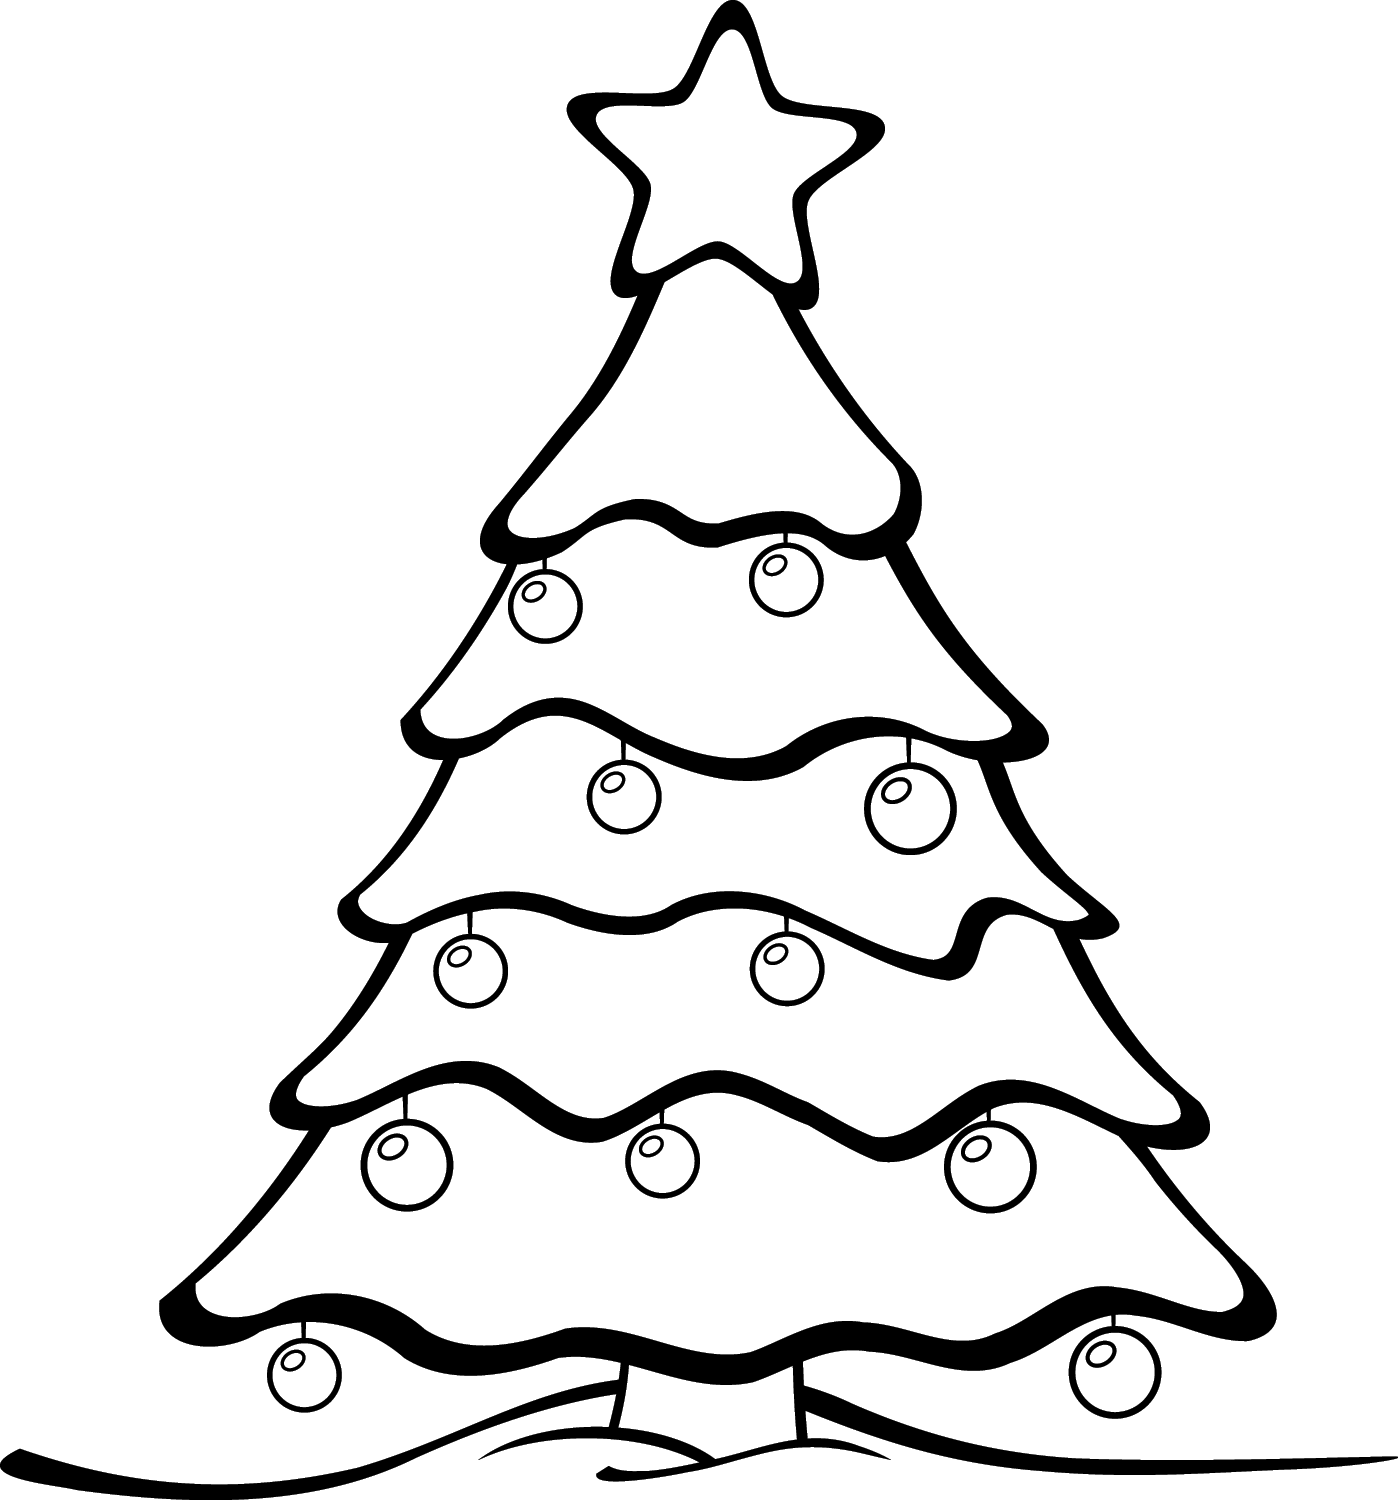 Christmas tree shape clipart clipart black and white download 12 Days of Free Christmas Printables | Pinterest | Stamps, Christmas ... clipart black and white download